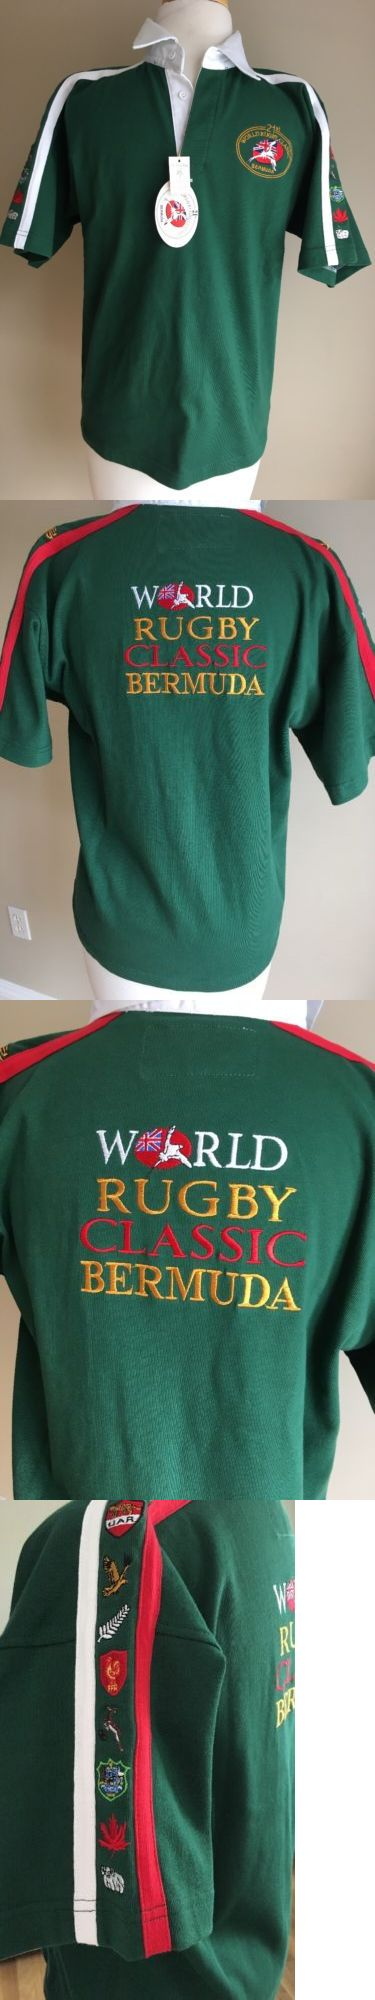 Rugby 21563: Boys Xl 21St Annual Authentic World Rugby Classic Rugby Shirt - New With Tags - -> BUY IT NOW ONLY: $39 on eBay!